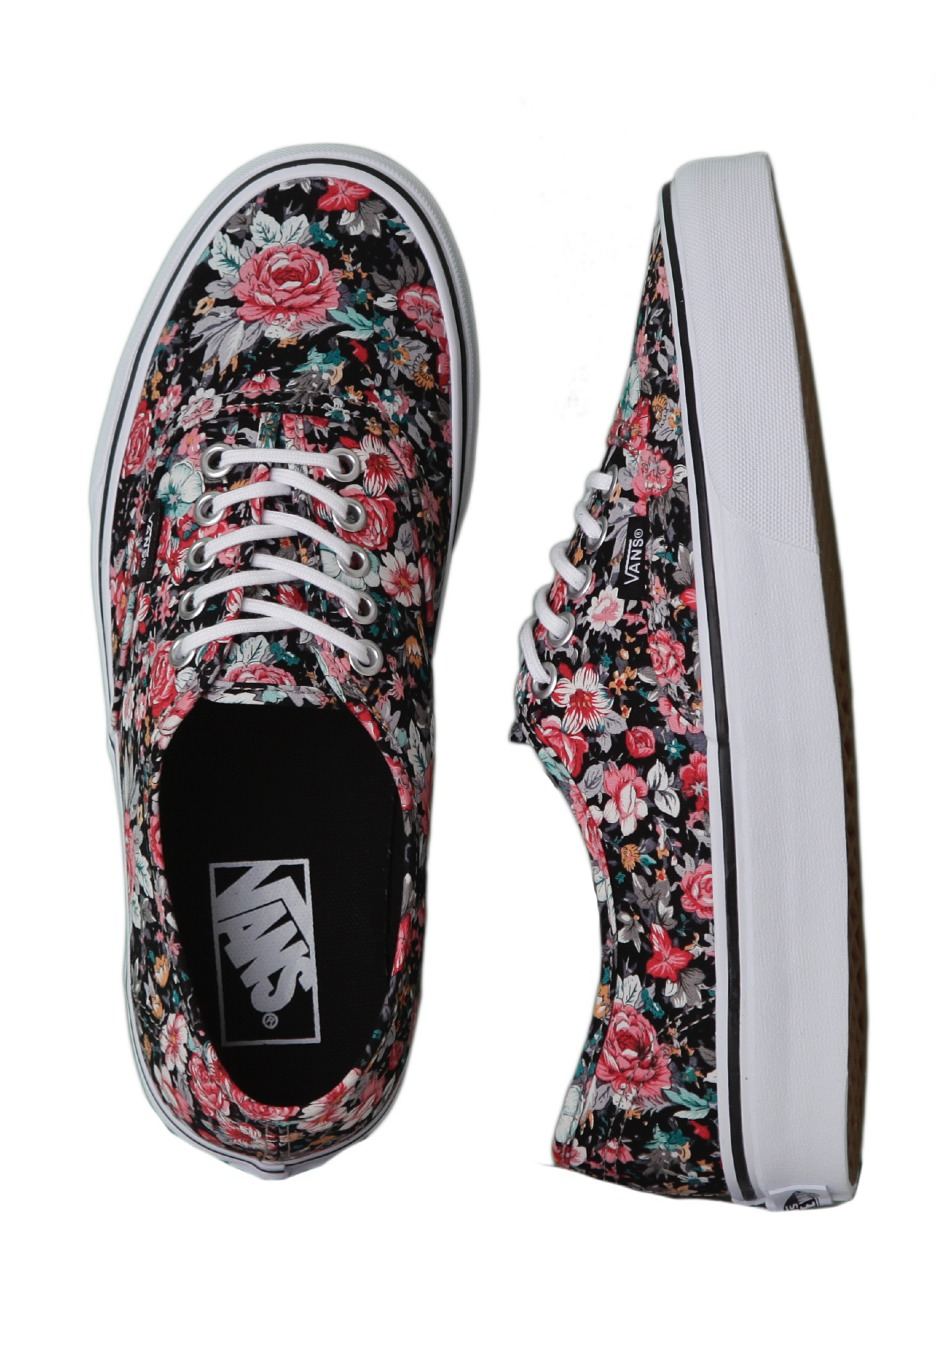 Vans Shoes For Girls 2014 Price - More information ...